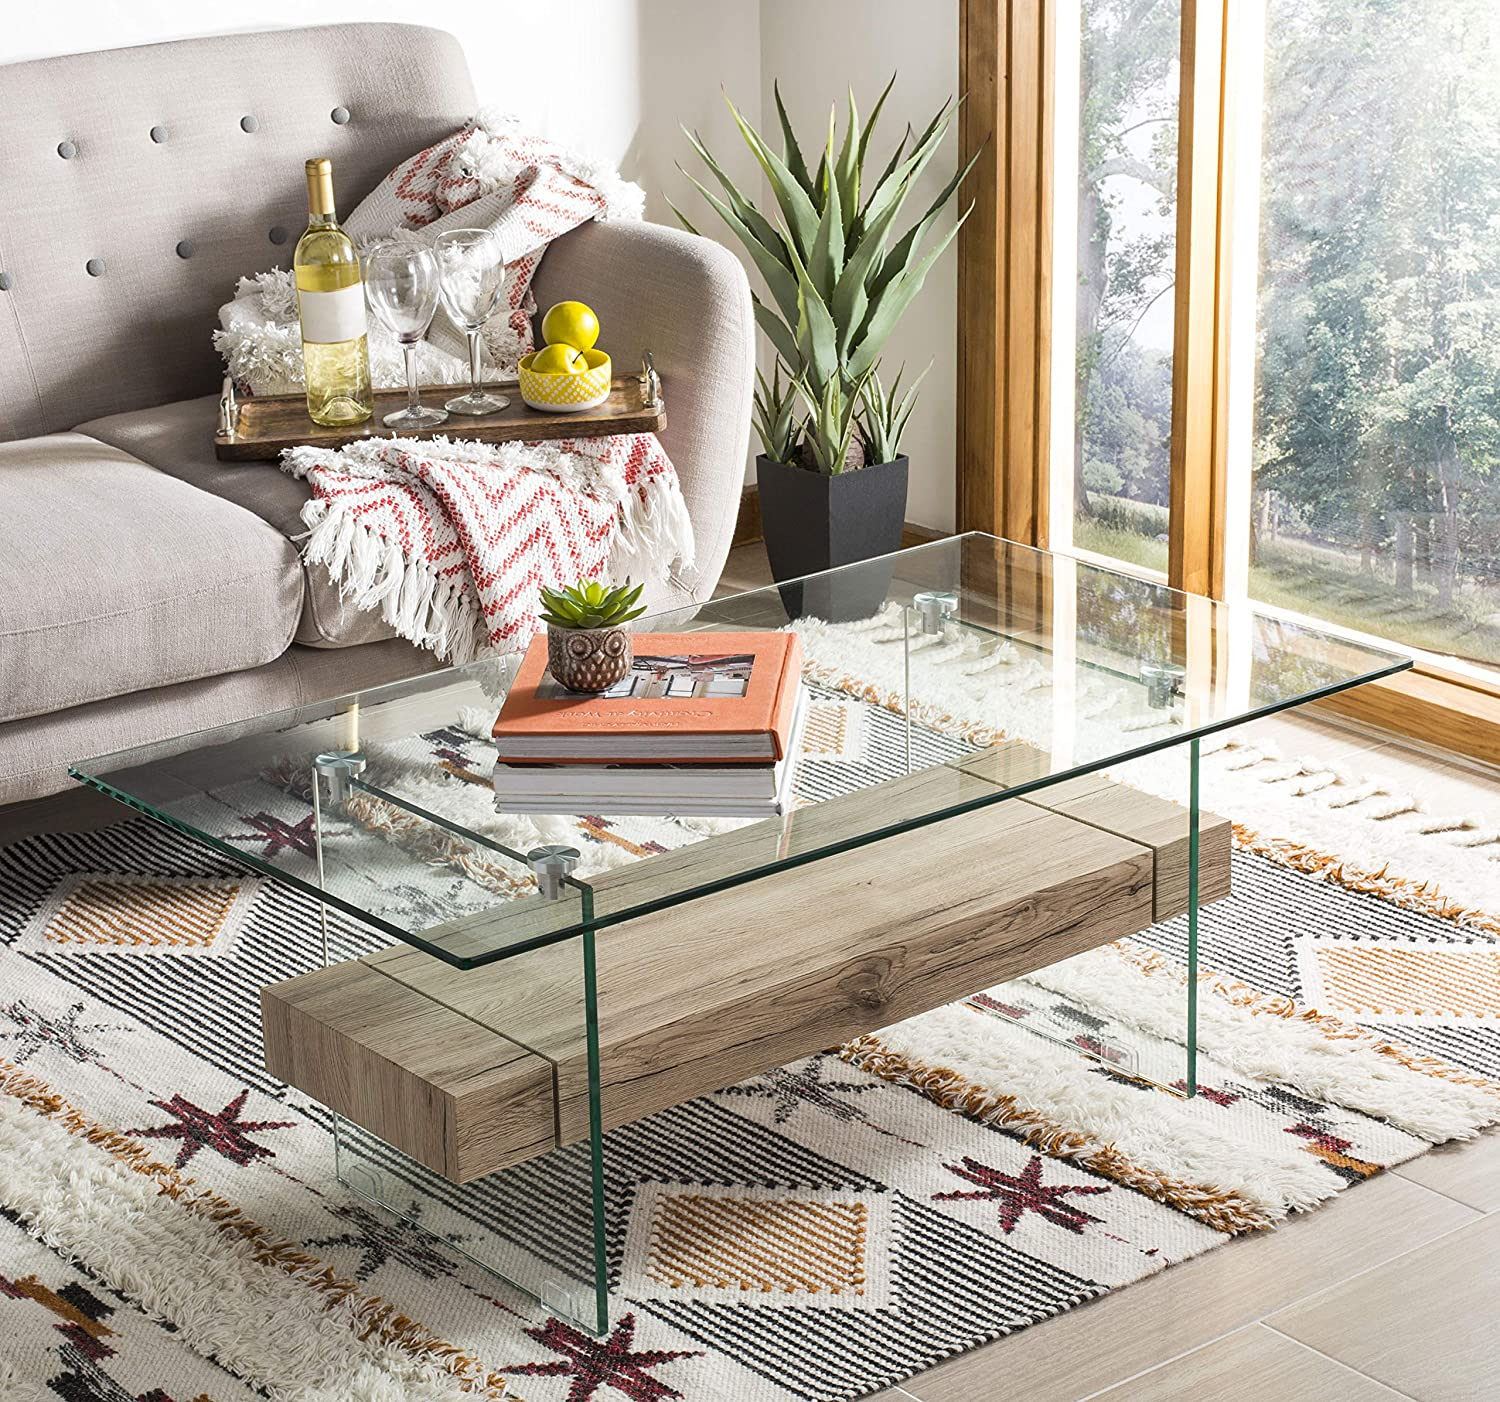 Safavieh COF7004A Home Collection Kayley Natural Rectangular Modern Glass Coffee Table,